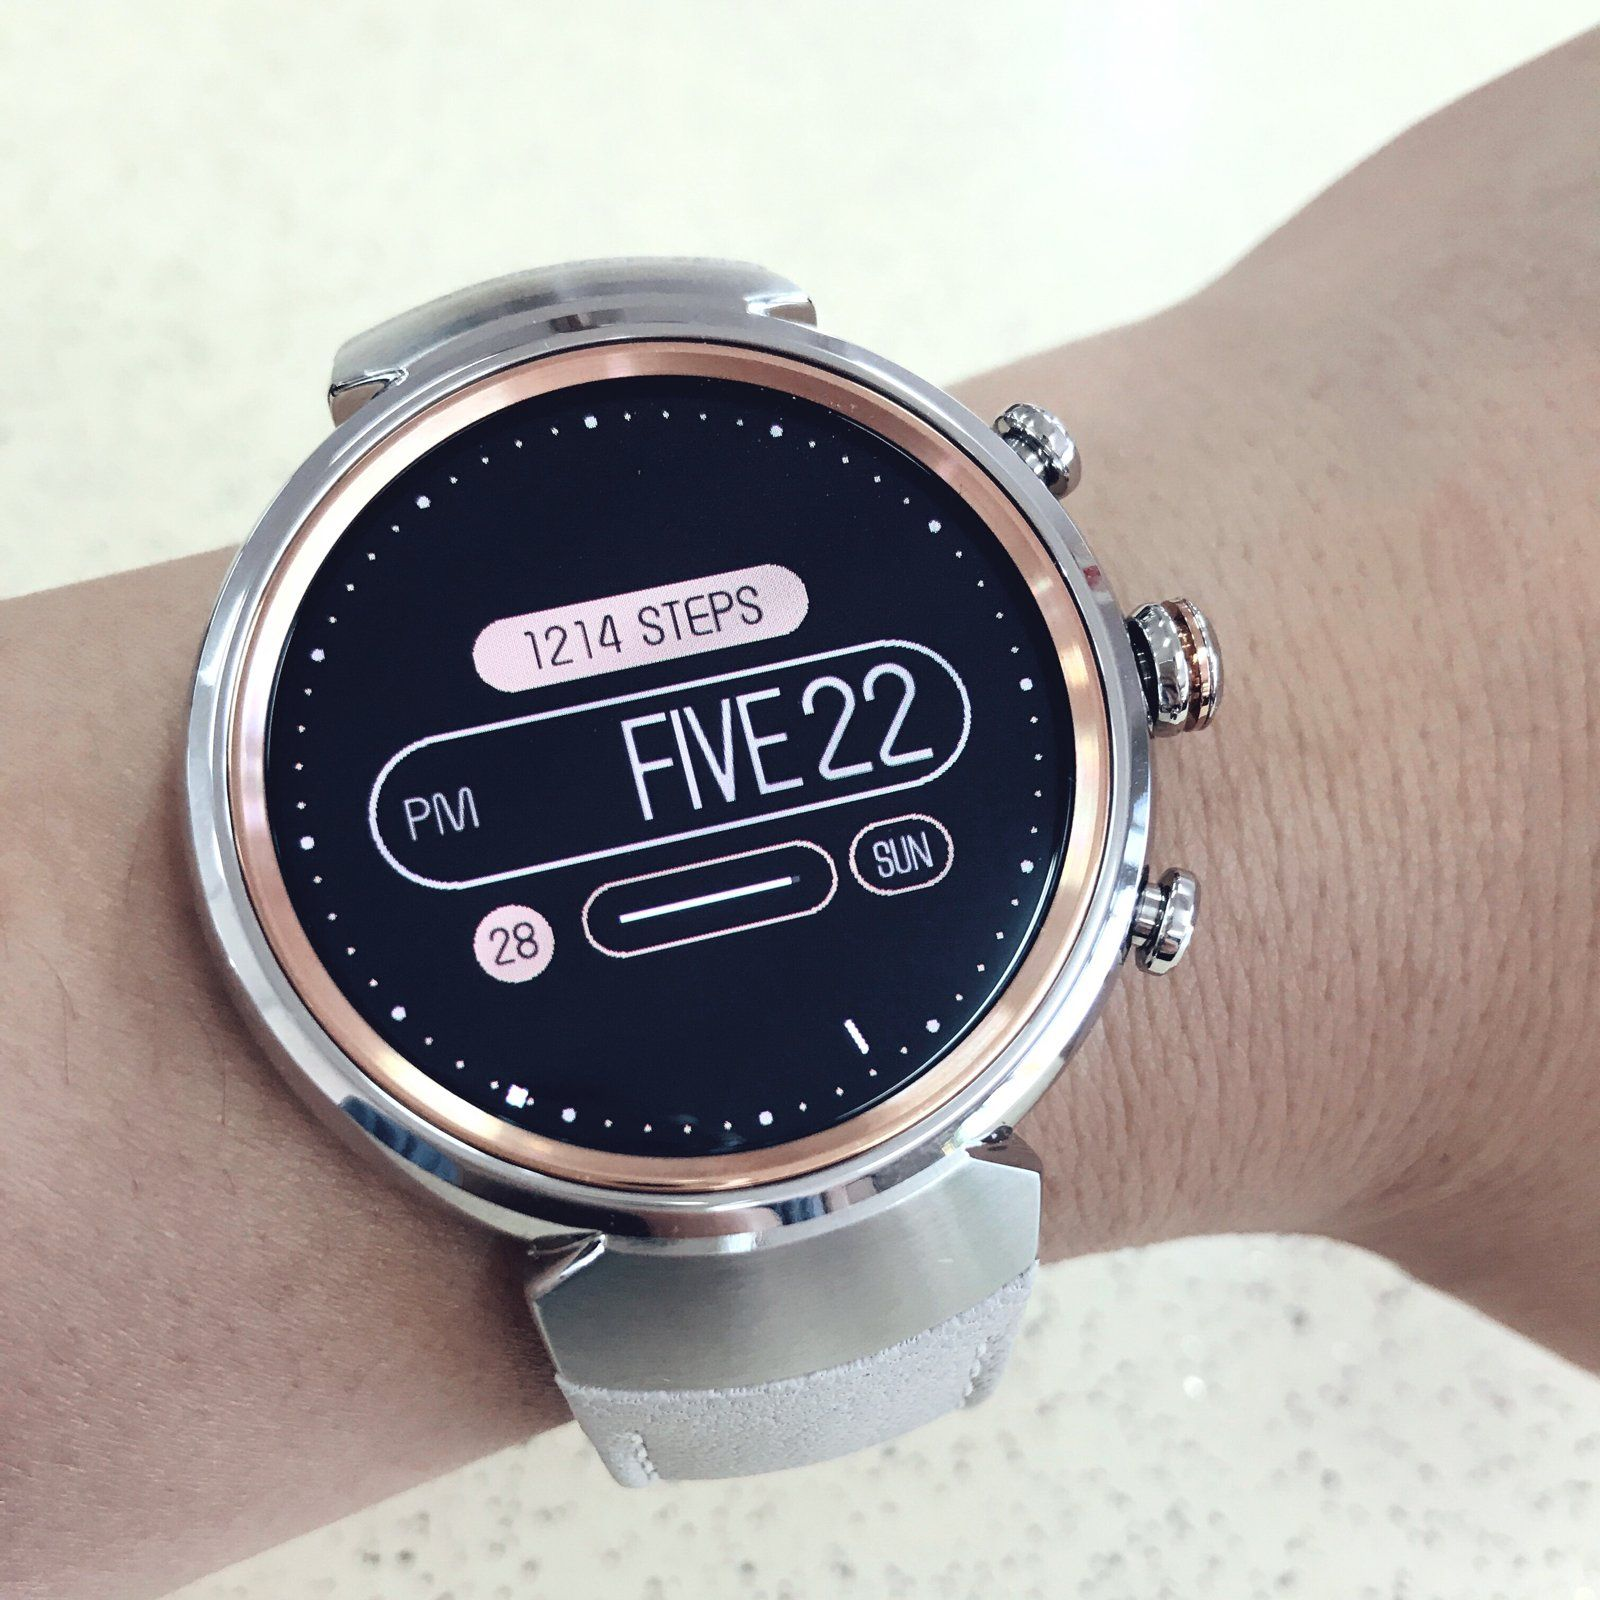 A watch face which uses English word as hour indicator